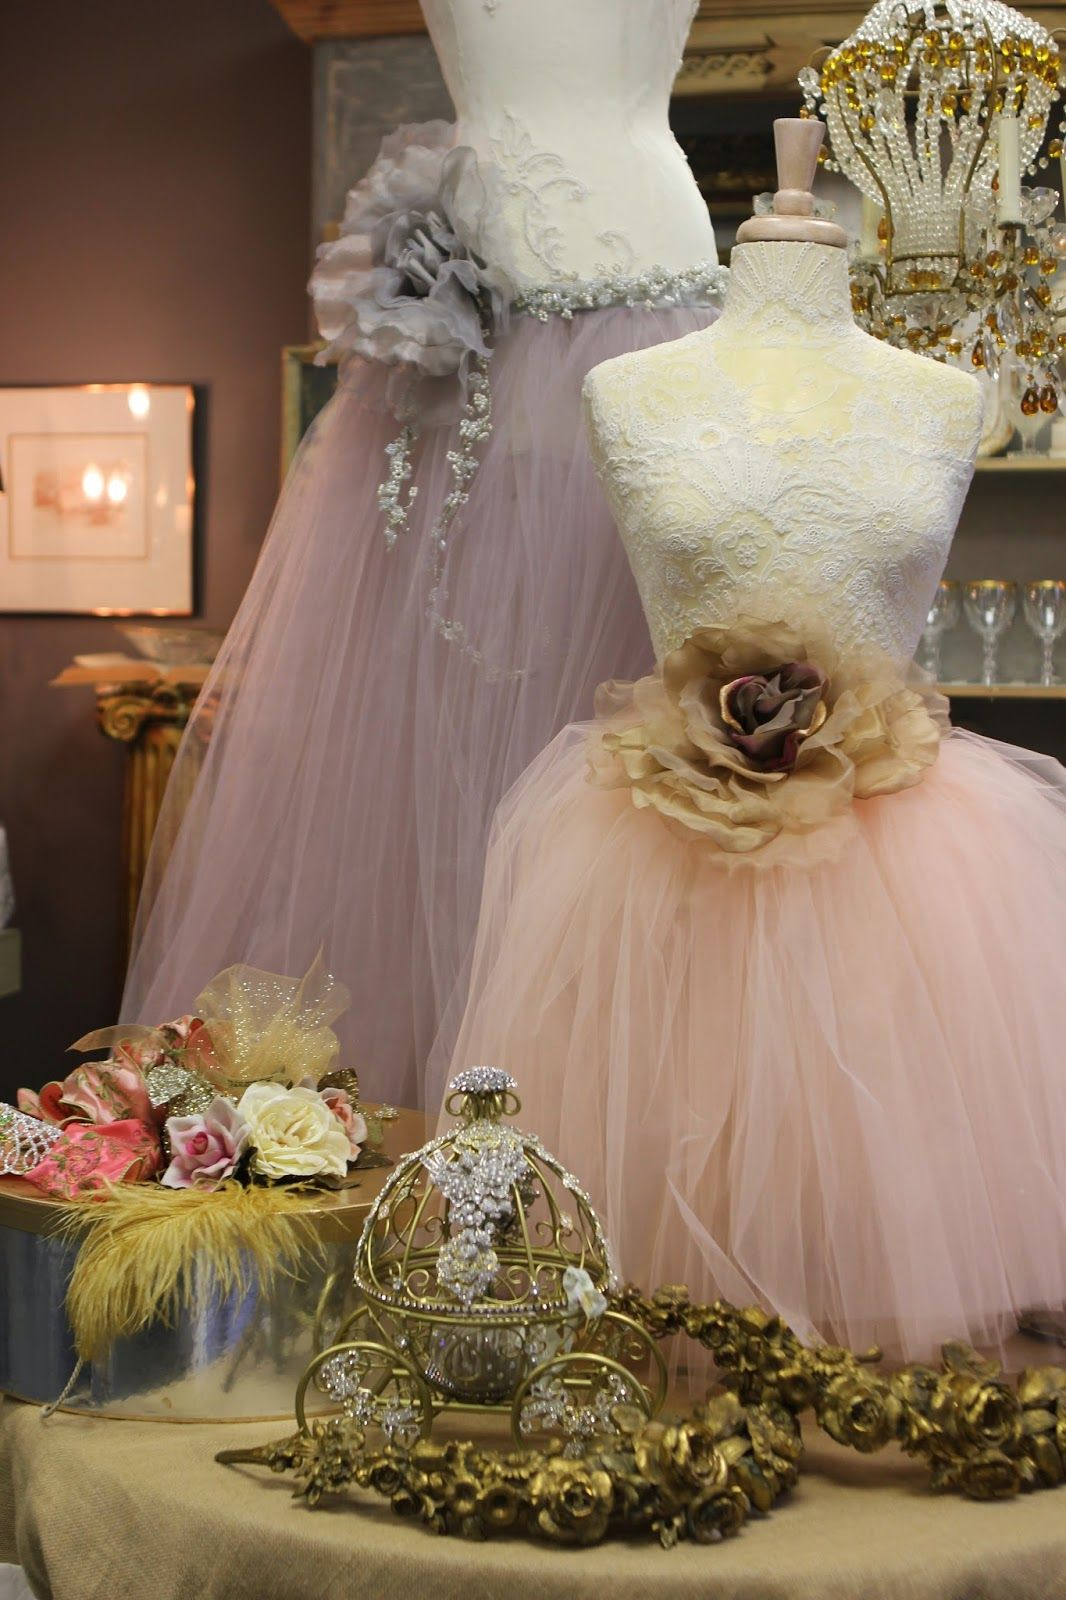 Romancing the home tiaras and tutus pop up sale sewing projects